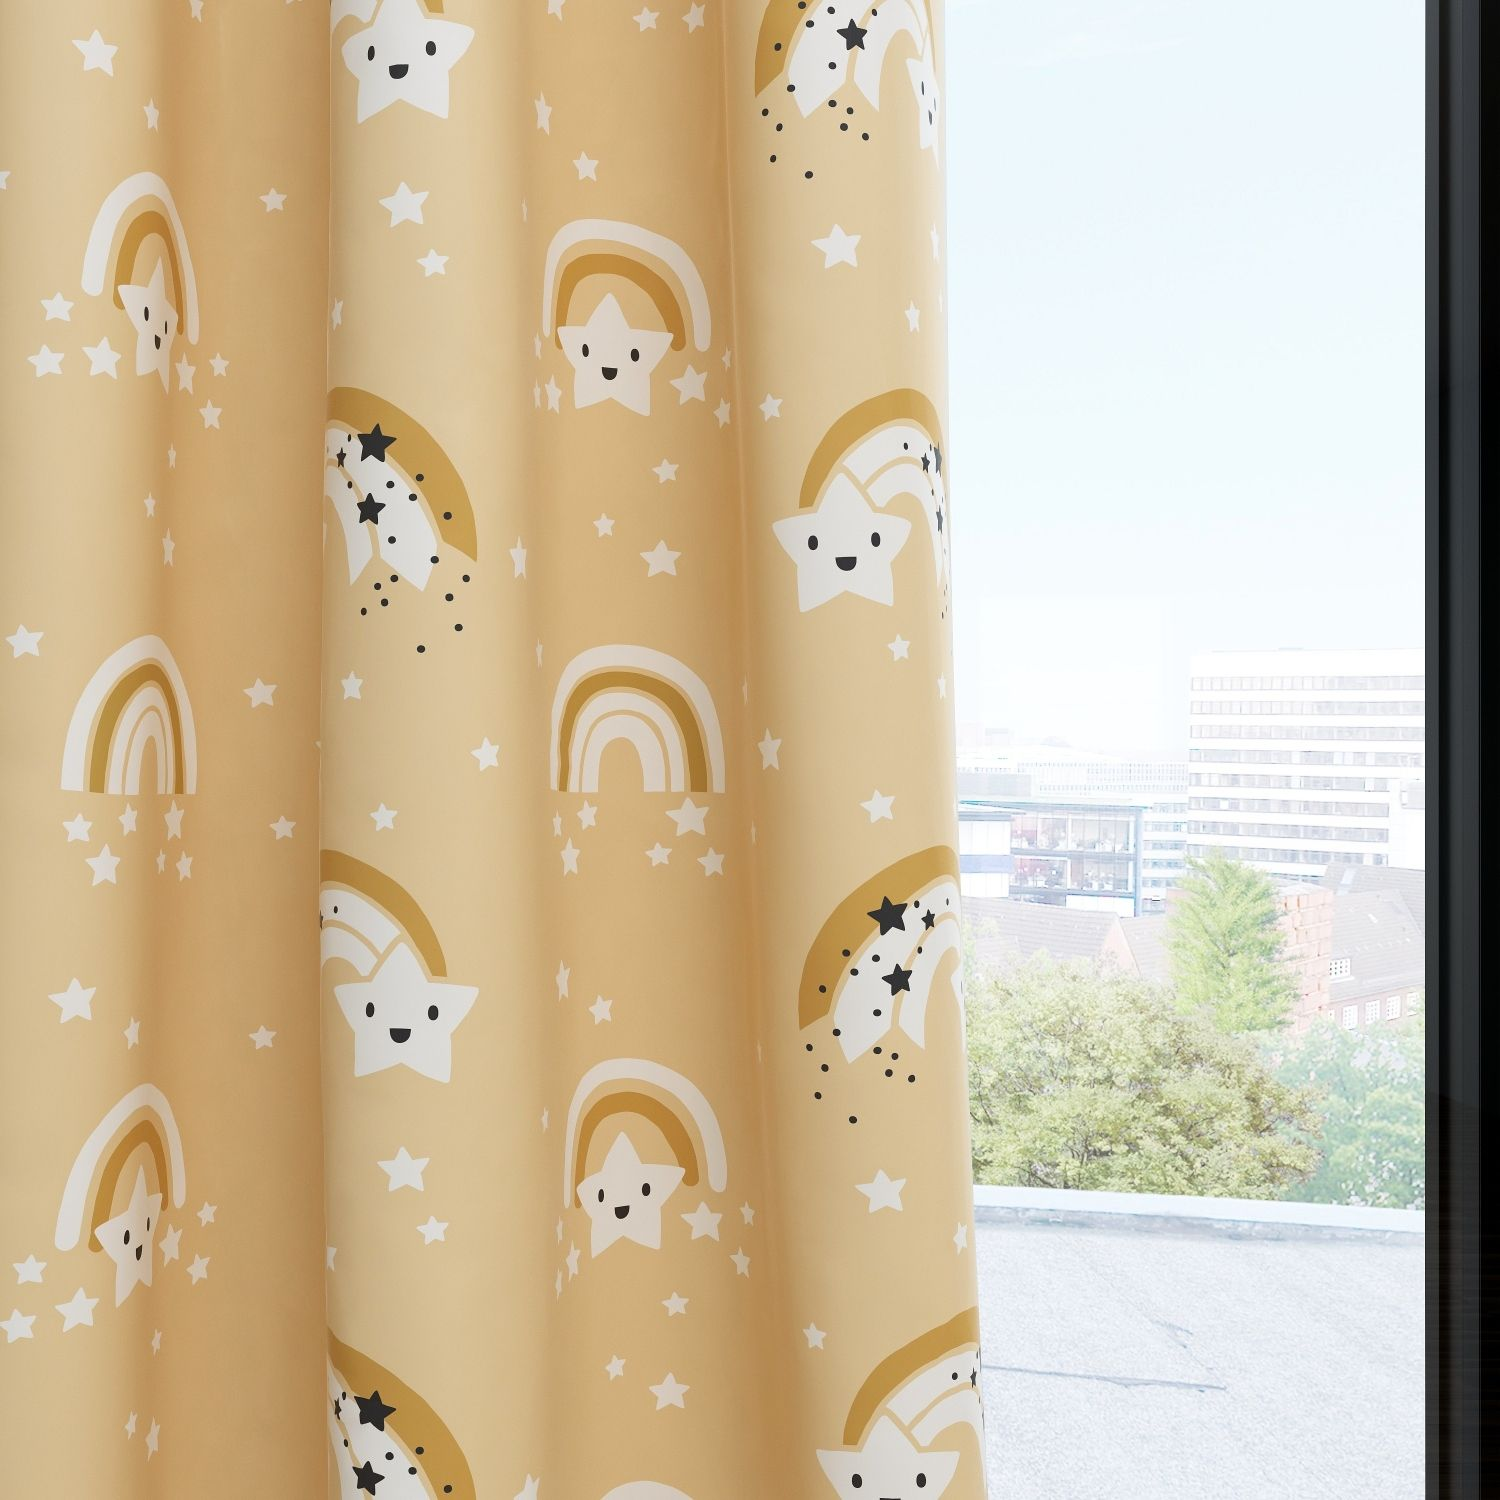 Rainbow Stars Kids & Nursery Blackout Curtains - Happy Stars